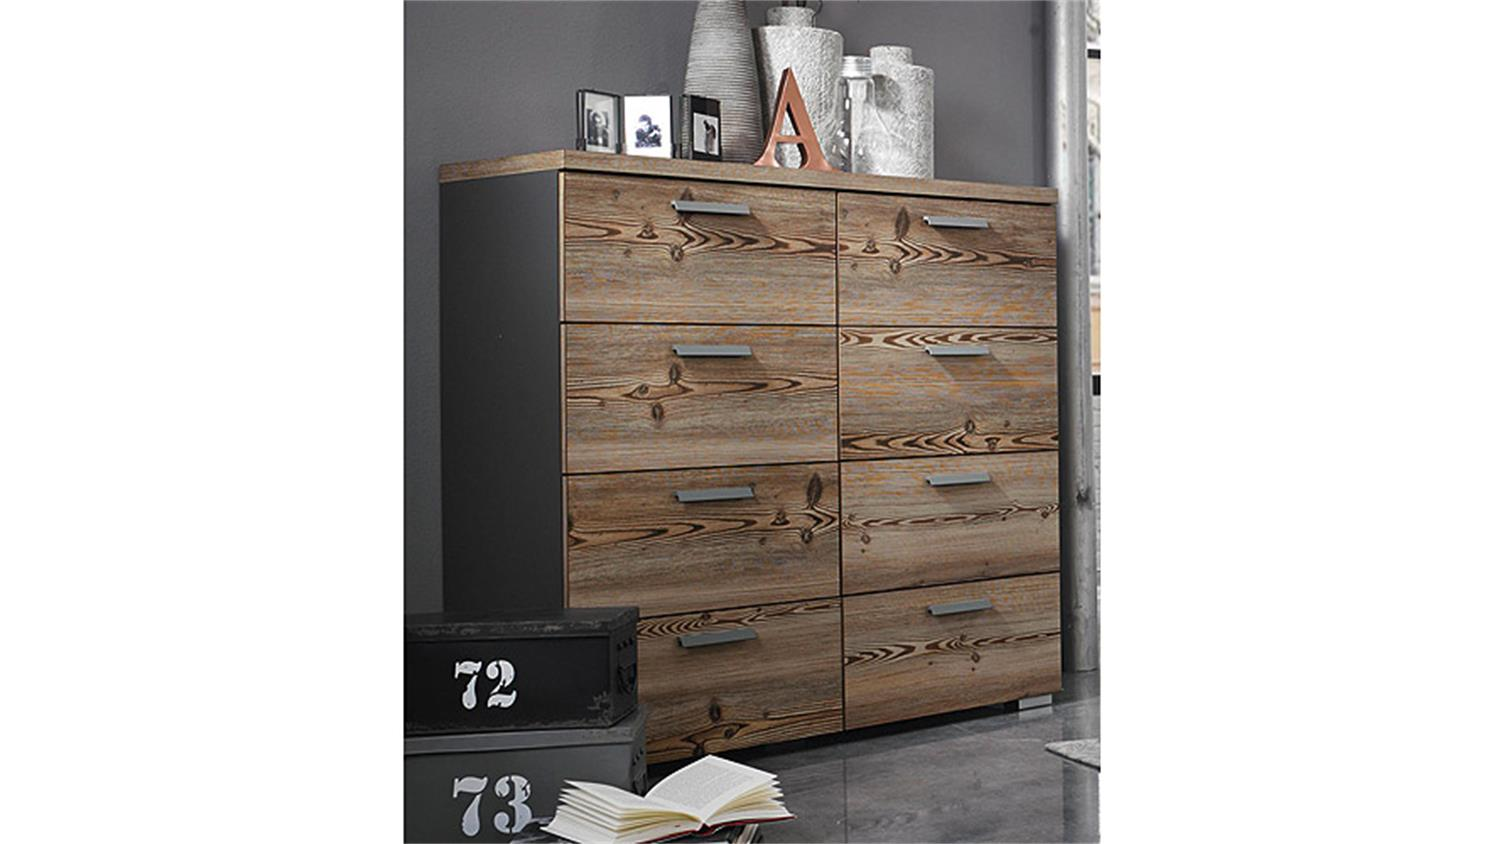 roller kommode montreal pinie wei wenge 146 cm breit smash. Black Bedroom Furniture Sets. Home Design Ideas